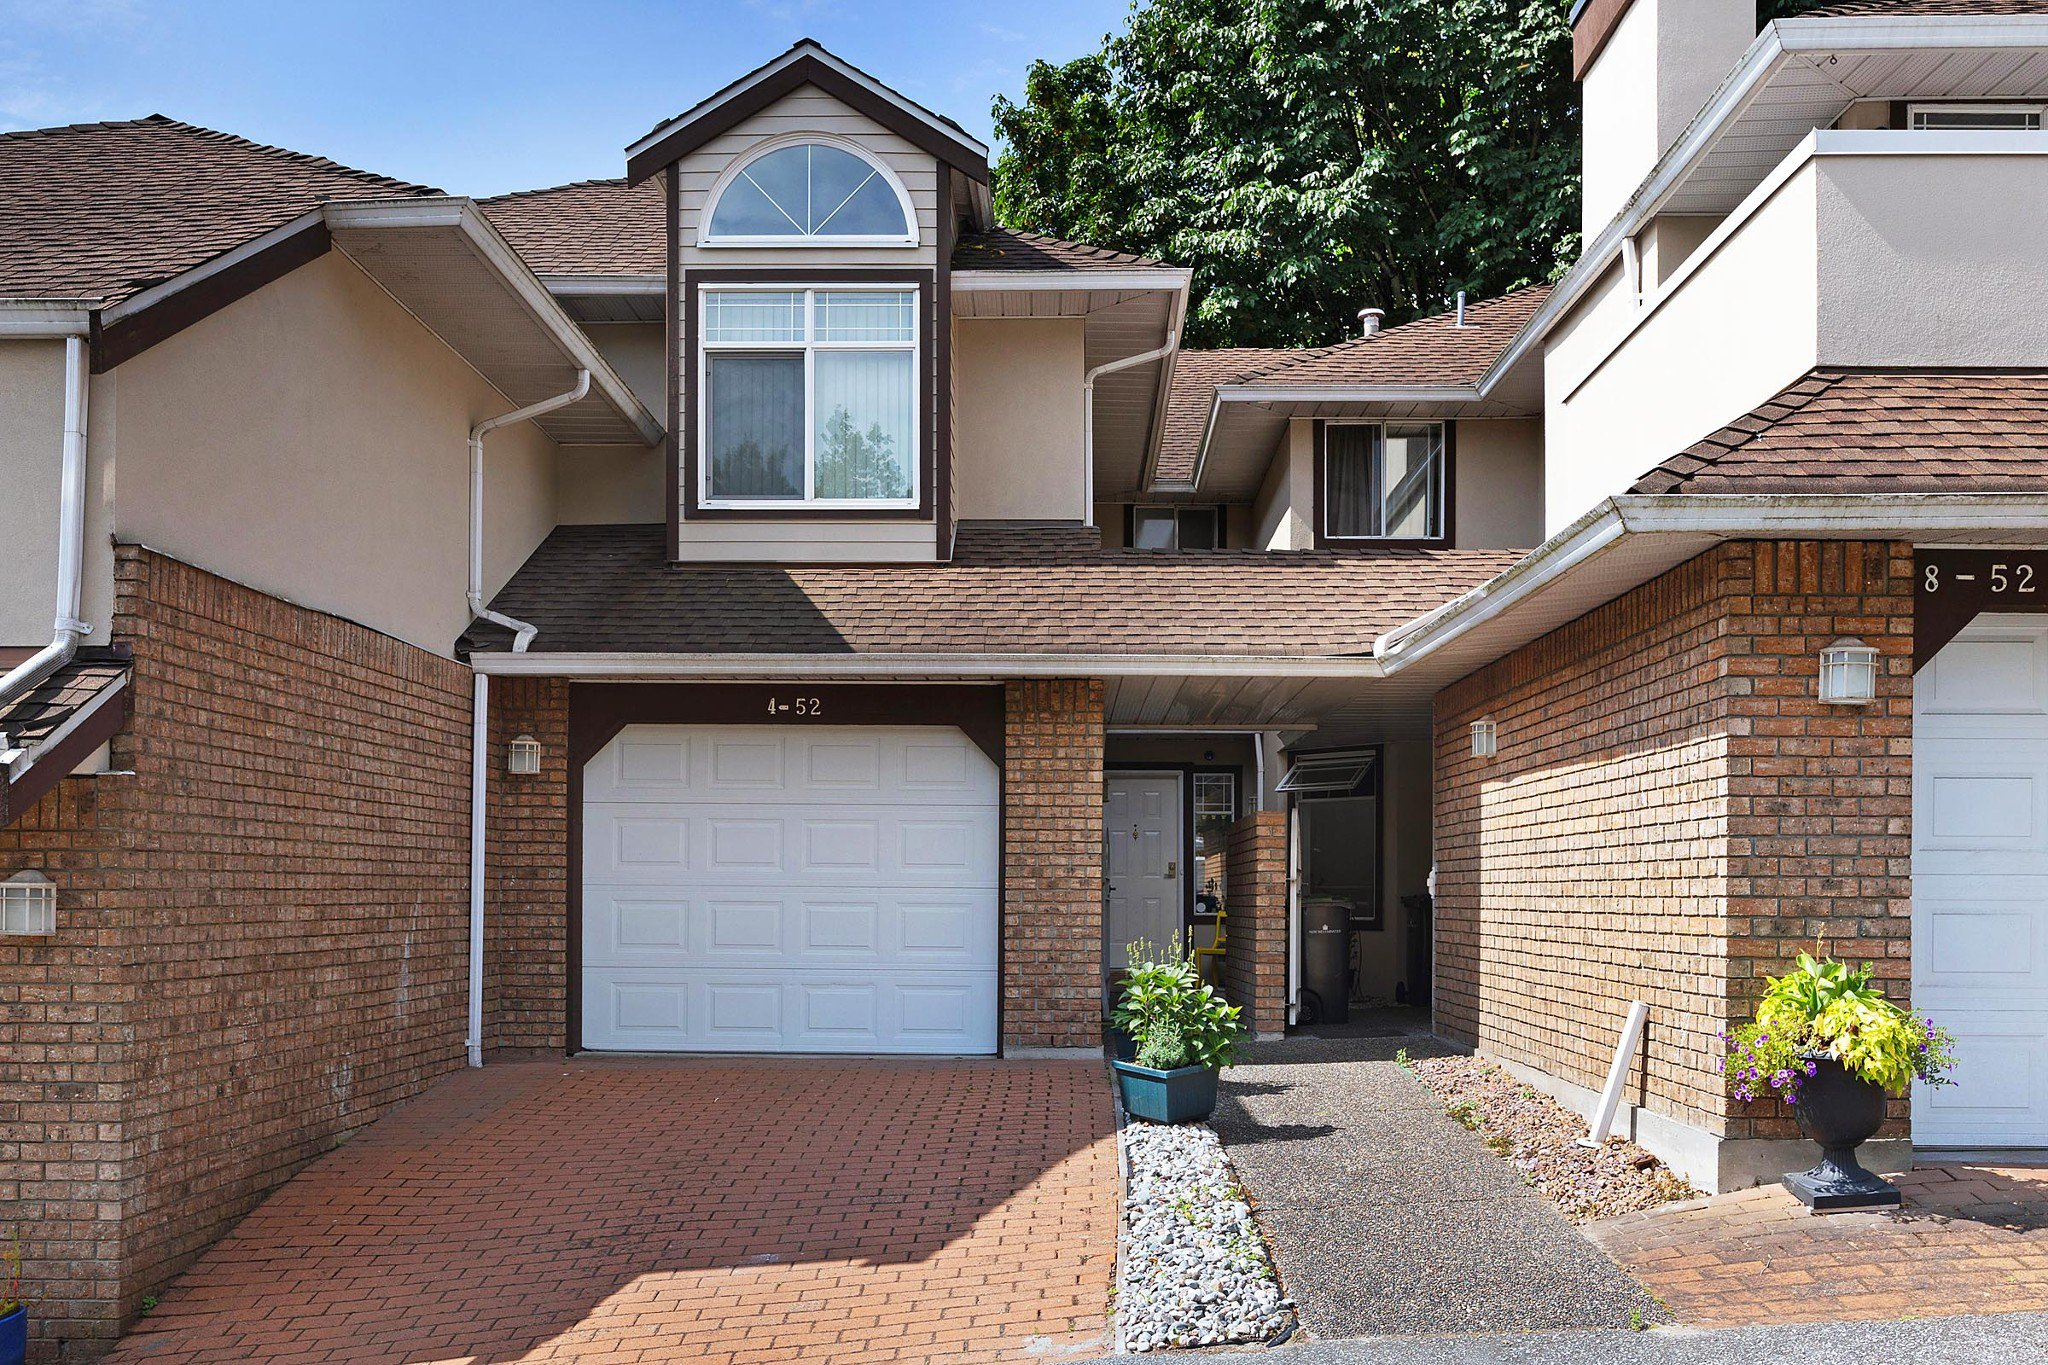 Sold Real Estate Property: 452 Richmond St, New Westminster, British Columbia, V3L 5P2